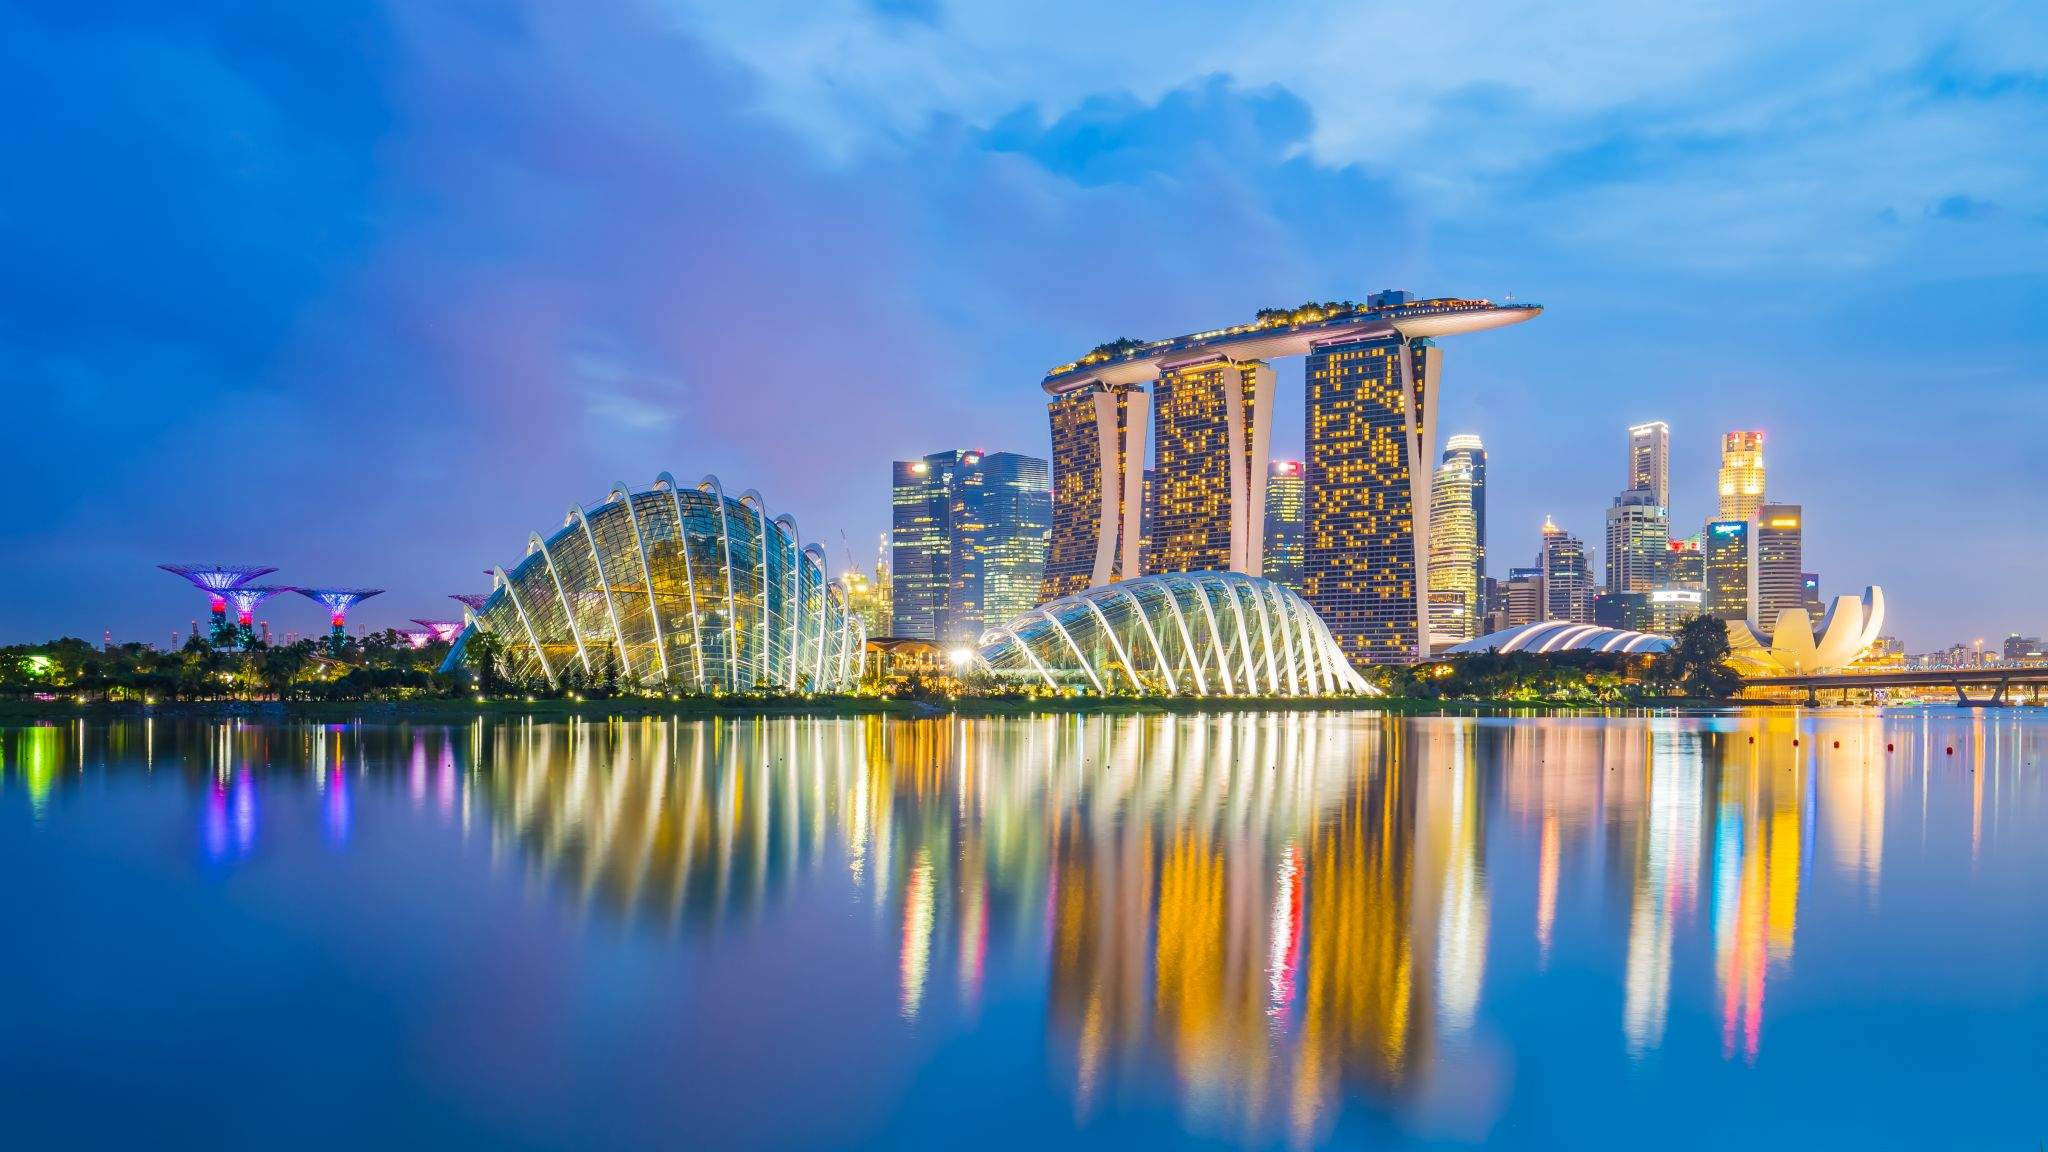 Impressive in any direction: Singapore